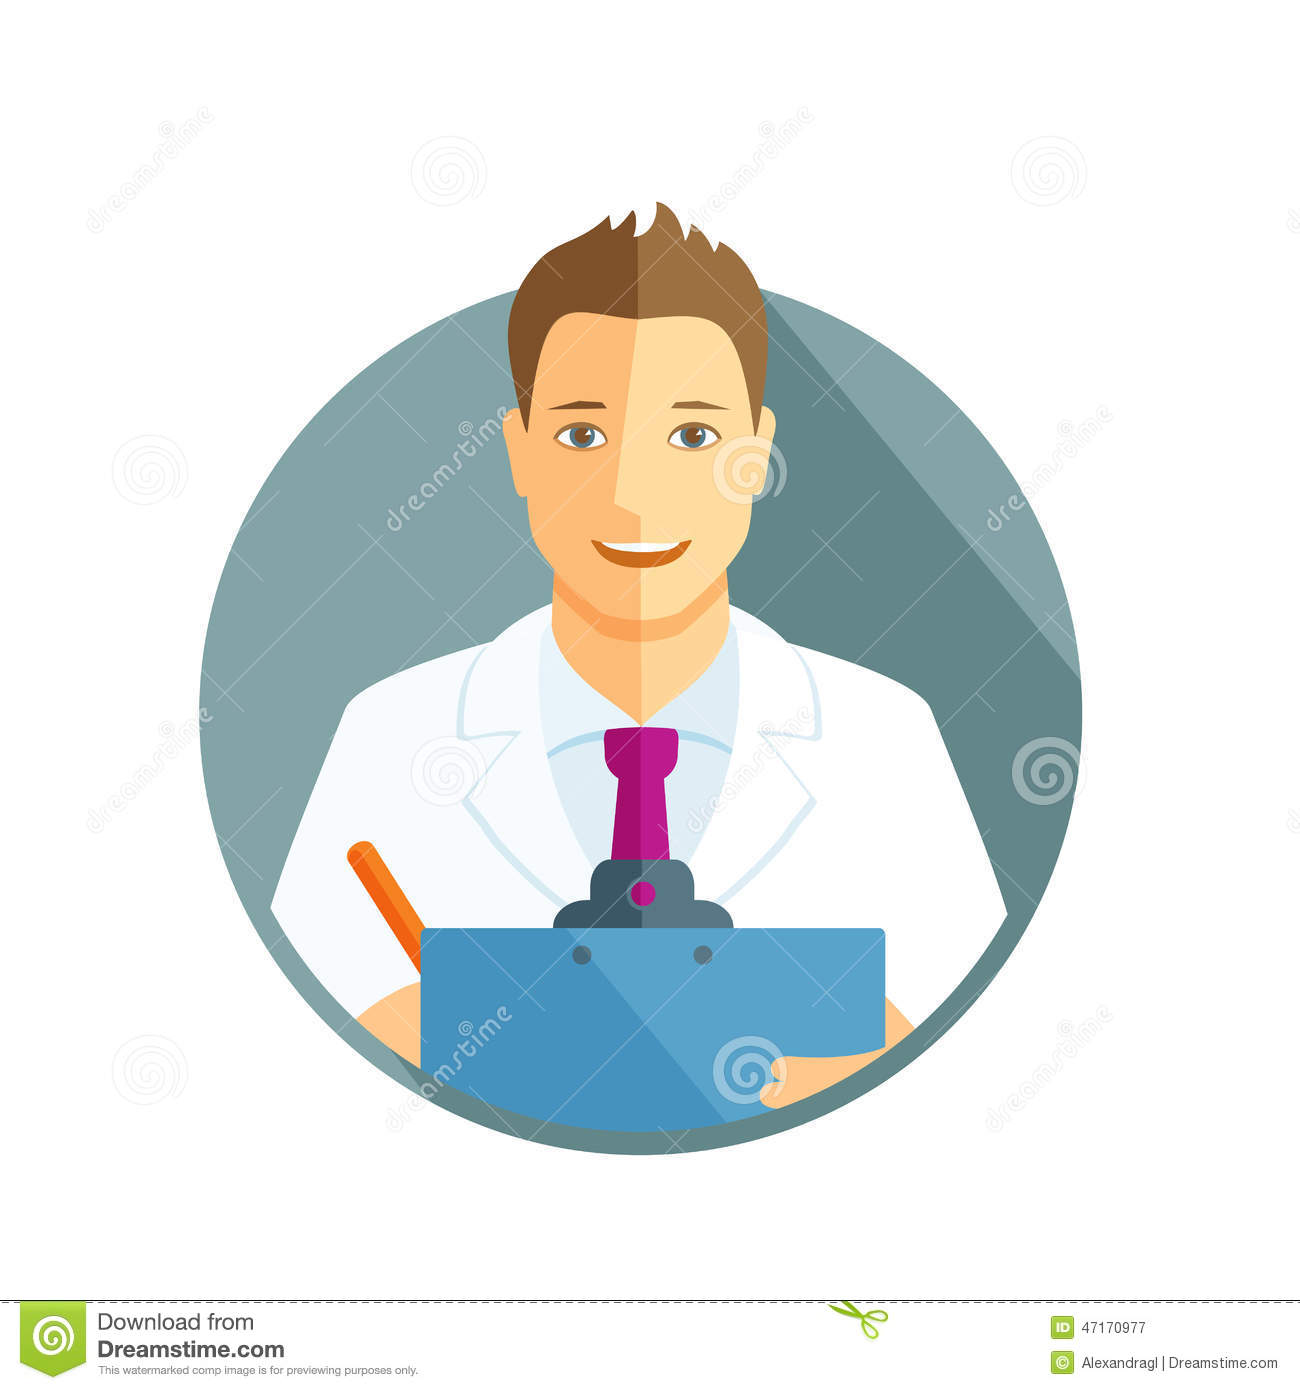 Flat icon of a doctor stock vector. Image of doctor, male ...